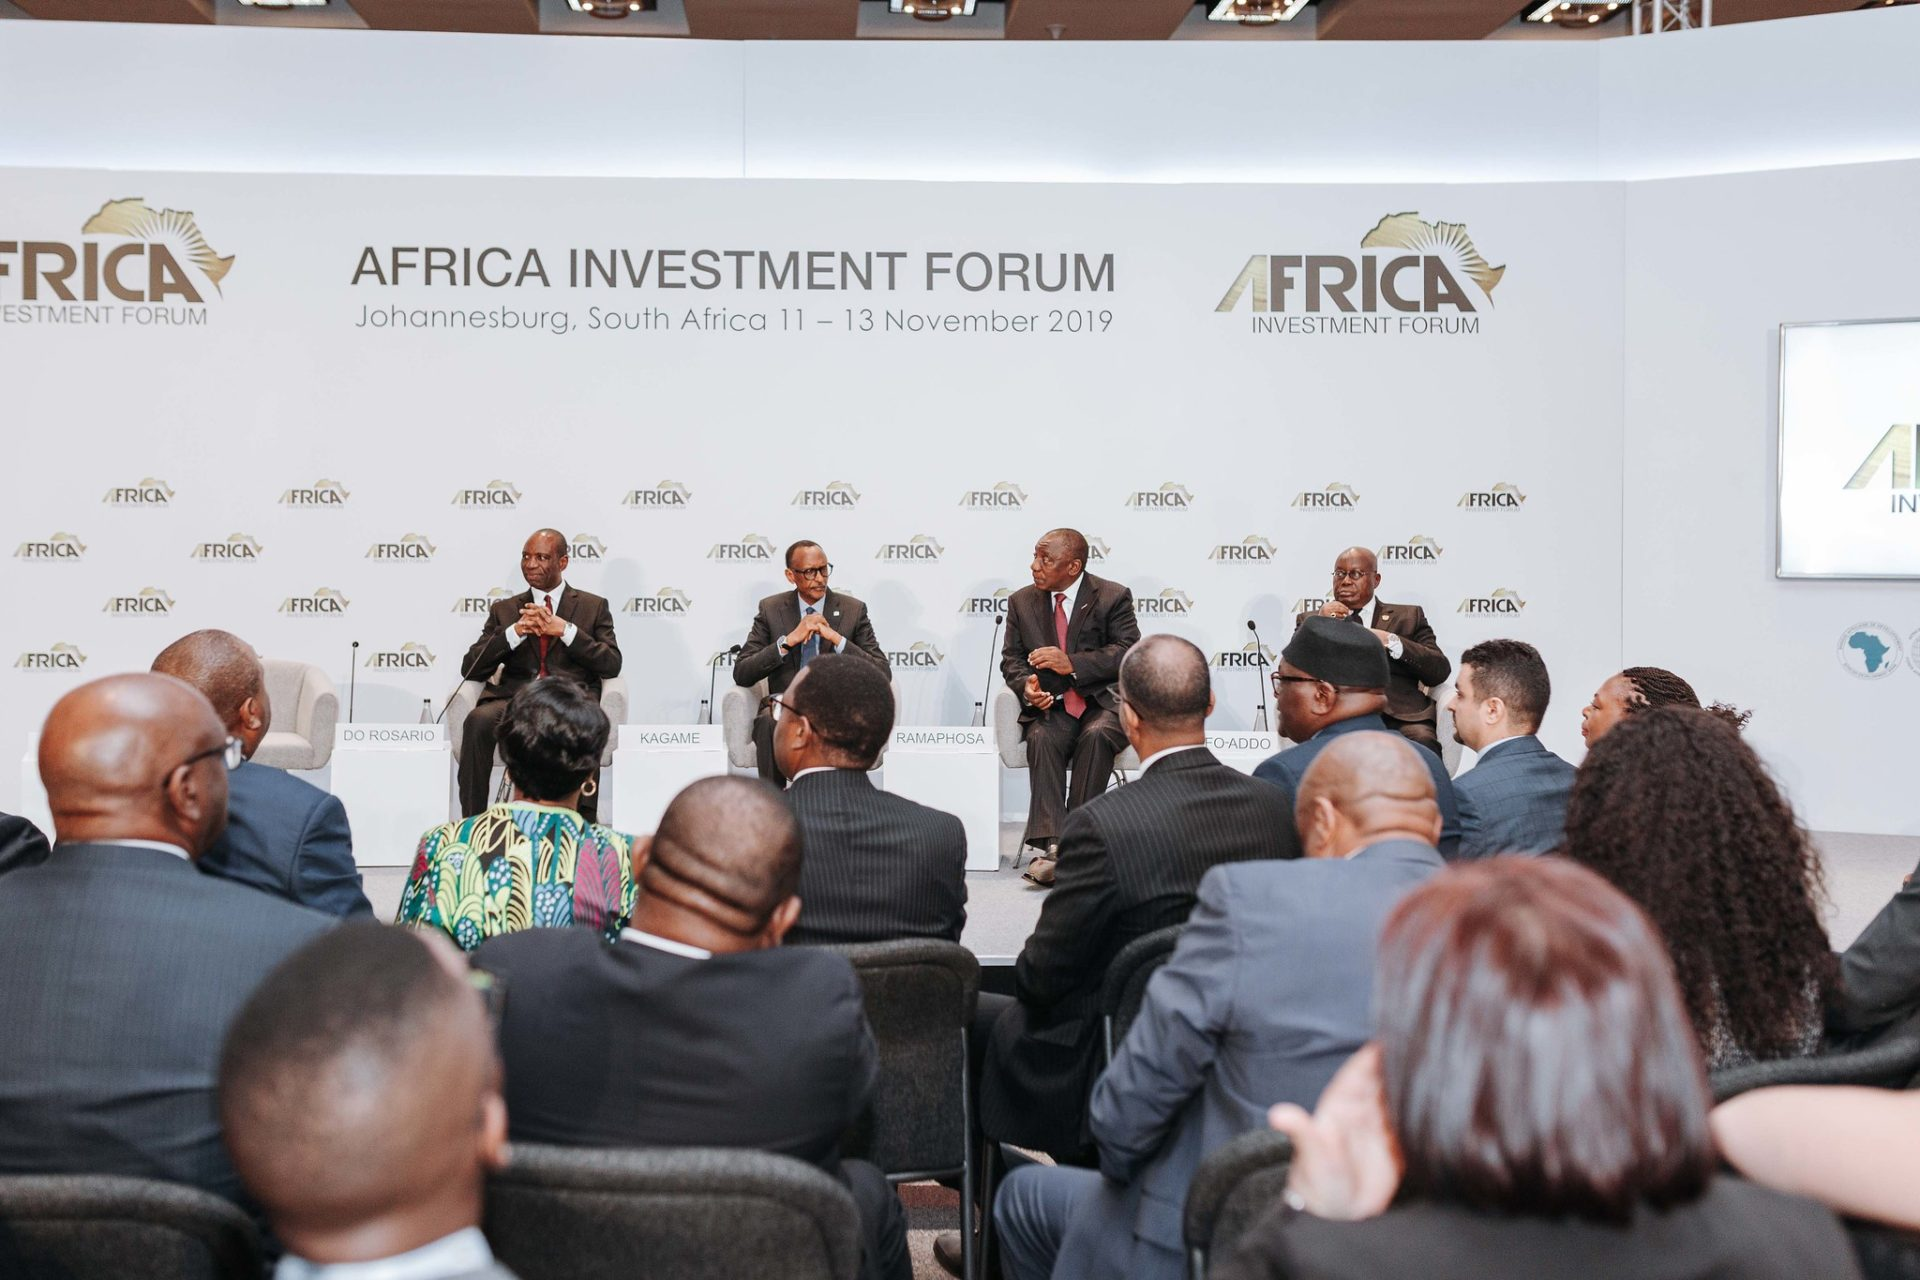 Record-breaking $67 Billion worth of deals announced at Africa investm